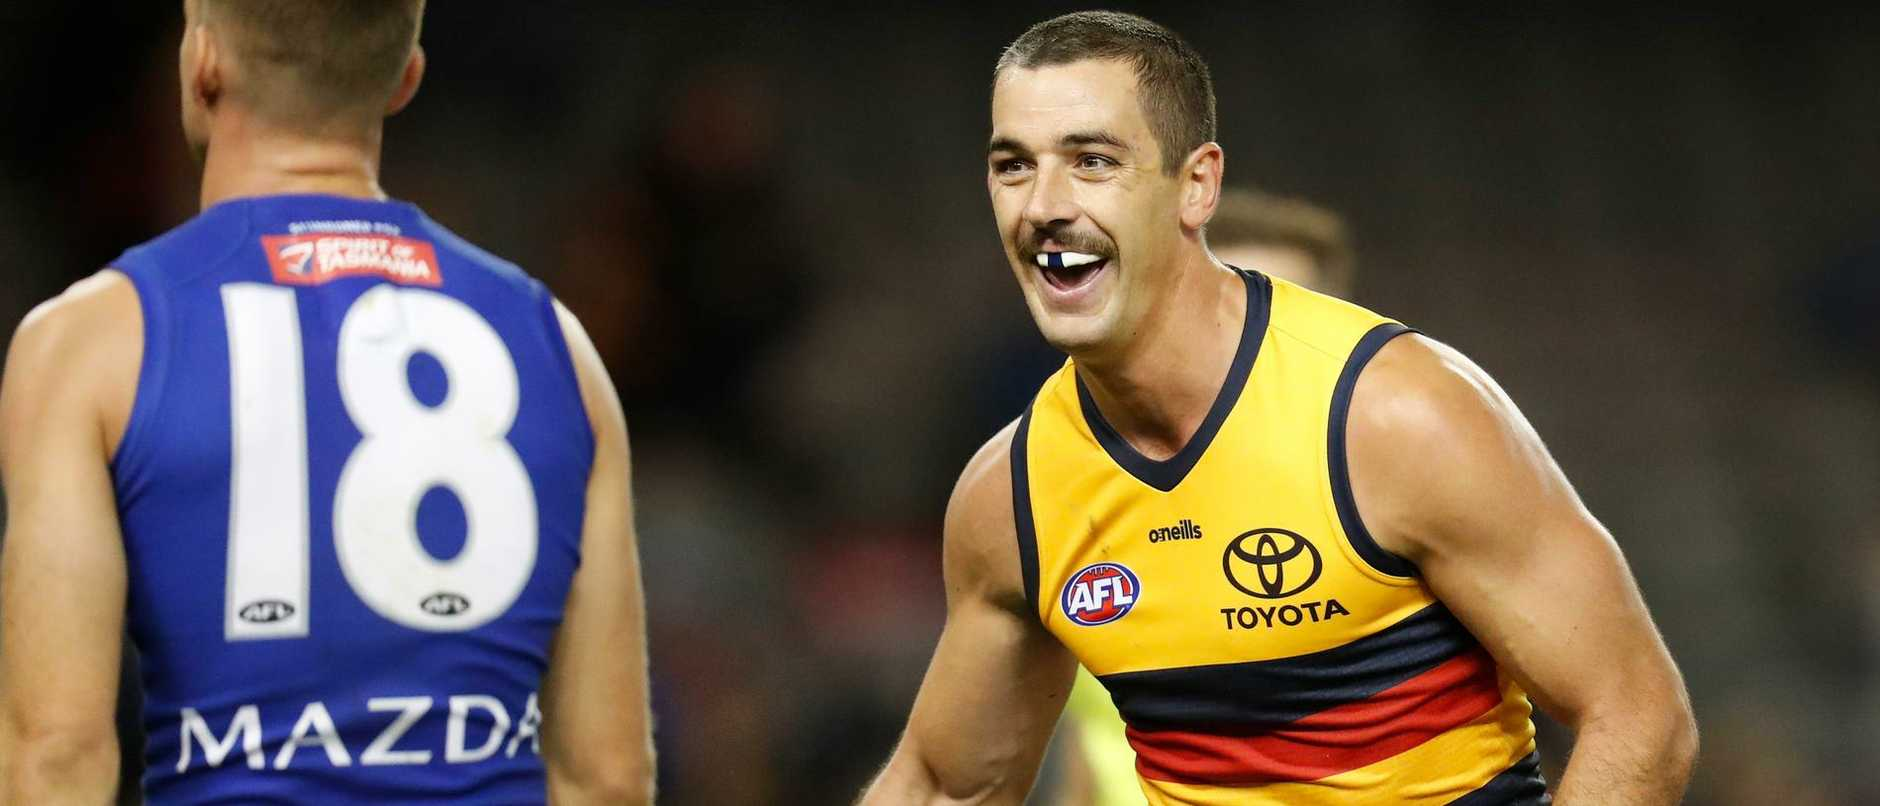 In-form Adelaide Crows forward Taylor Walker is out of contract at season's end but wants to play on in 2022